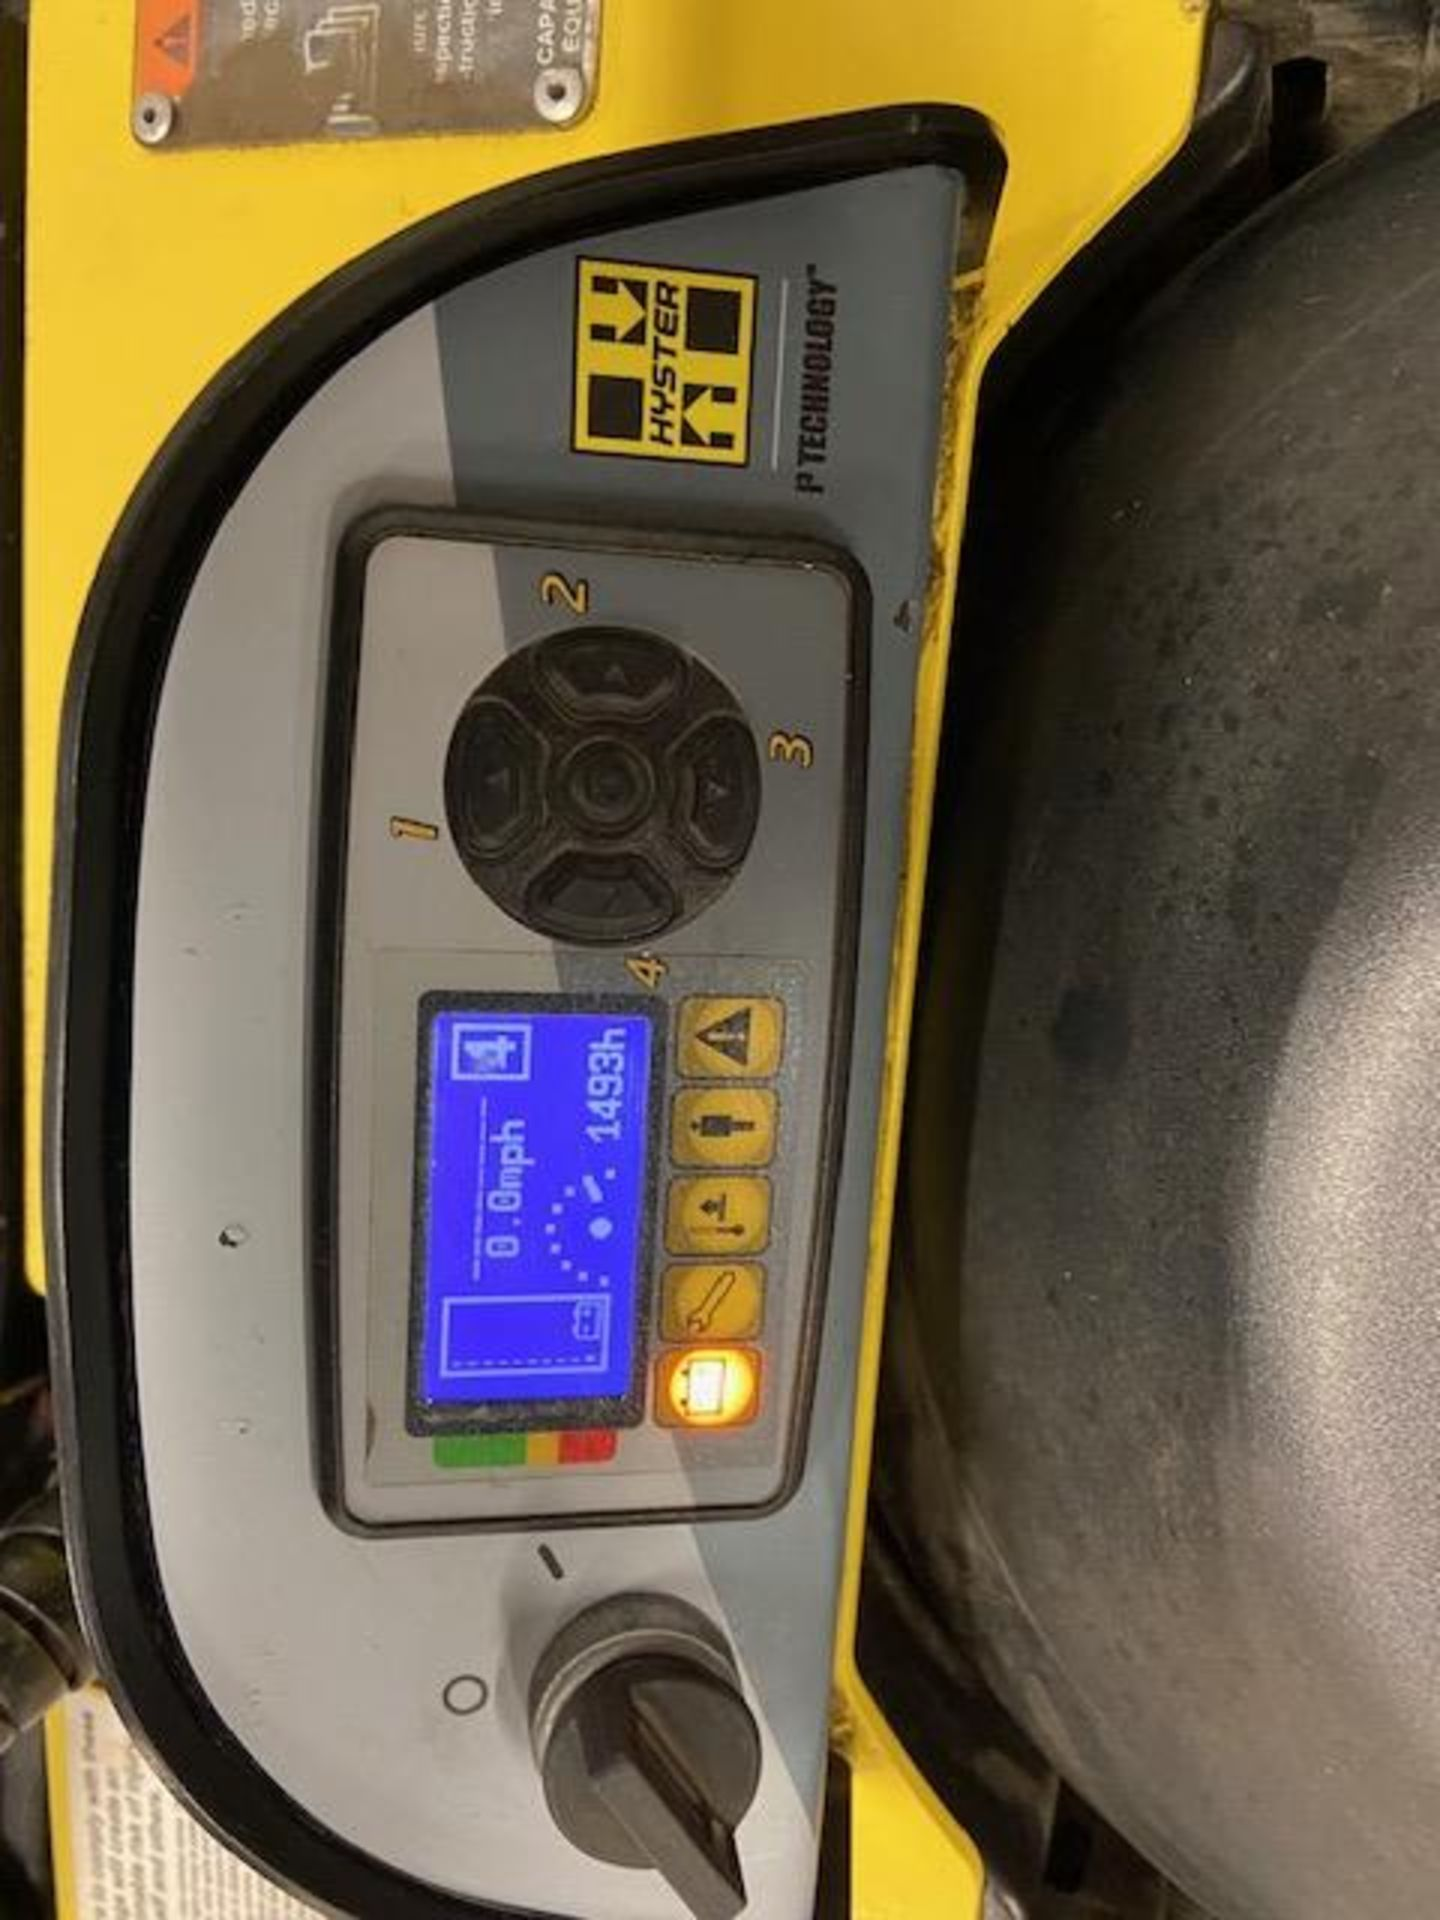 2019 Hyster Electric Ride on Powered Pallet Cart Lift 8000lbs capacity 8' Long with VERY LOW HOURS - Image 2 of 4